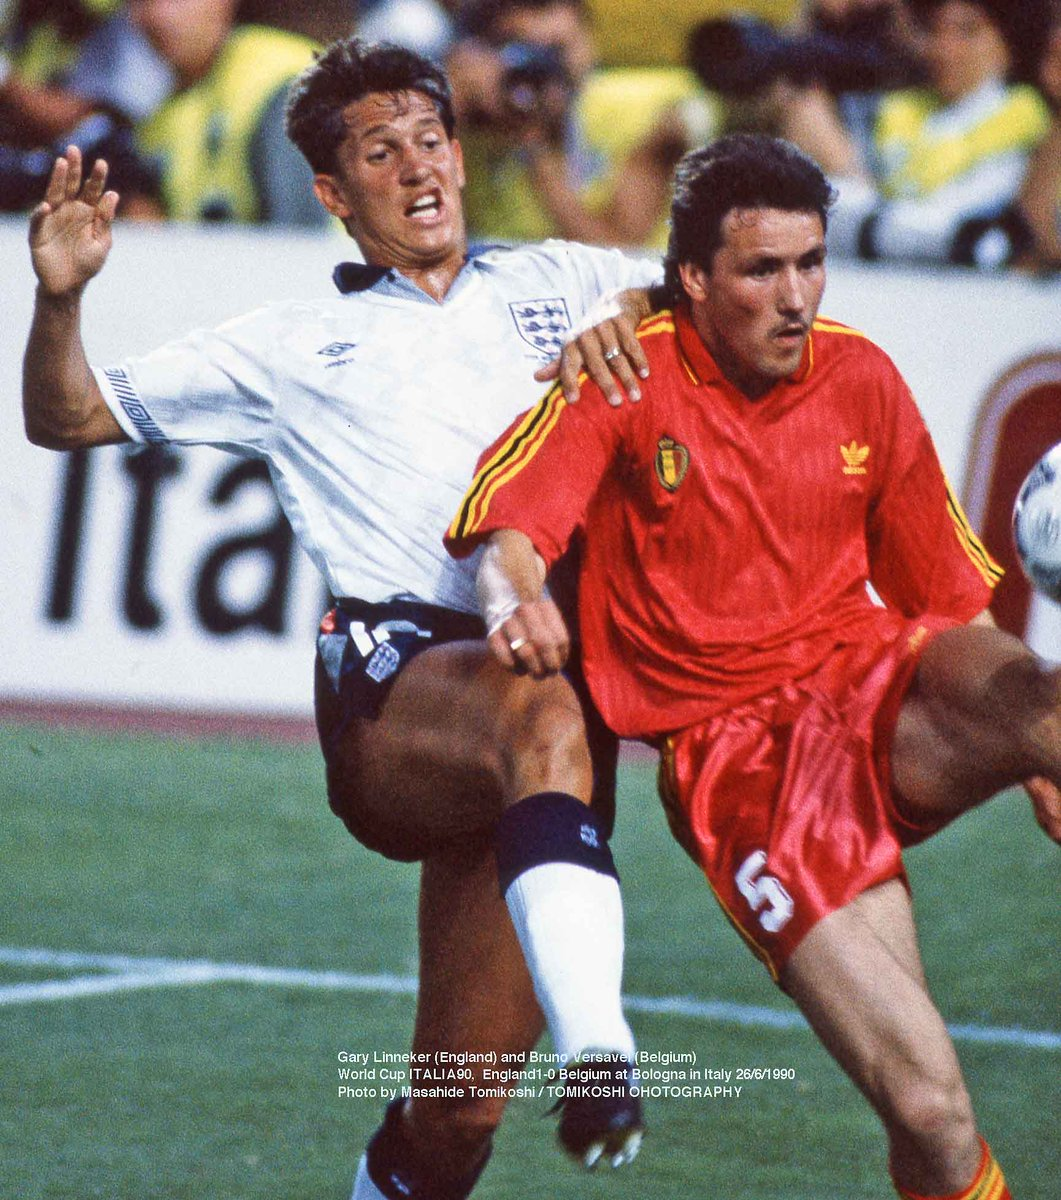 Tphoto On Twitter Gary Linneker England And Bruno Versavel Belgium World Cup Italia90 England1 0 Belgium At Bologna In Italy 26 6 1990 Photo By Masahide Tomikoshi Tomikoshi Pohotography Https T Co 4kwixia70f